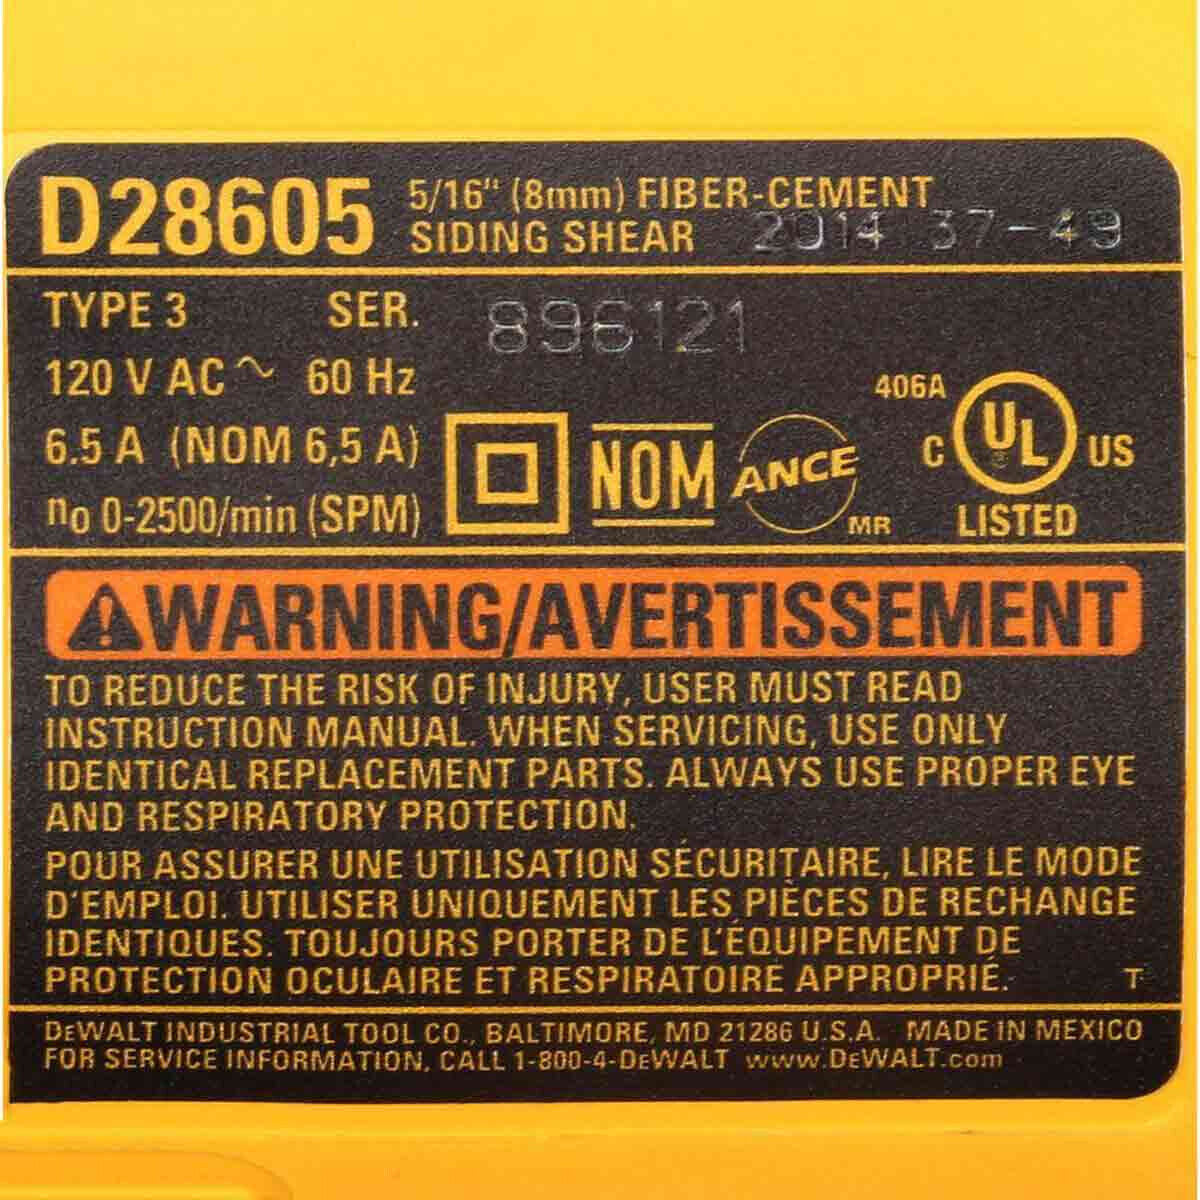 D28605 Dewalt 5/16 in. Variable Speed Cement Shear specifications lable